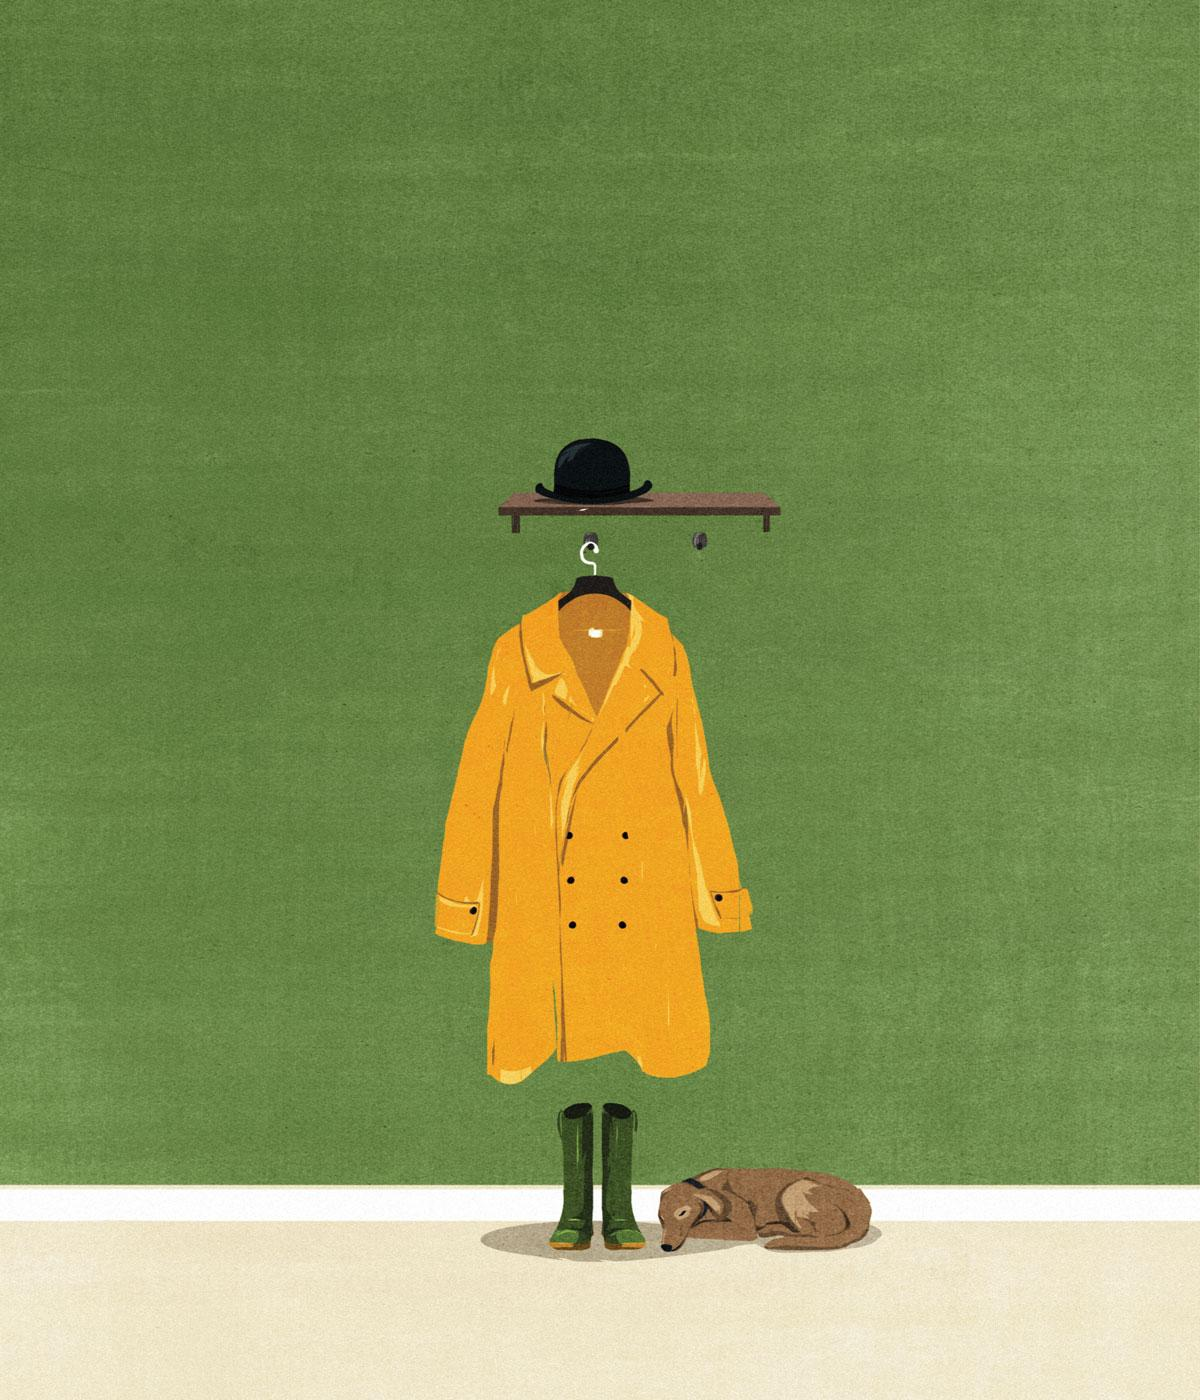 An illustration depicting a dog waiting by an unworn coat from the book How to Die Well